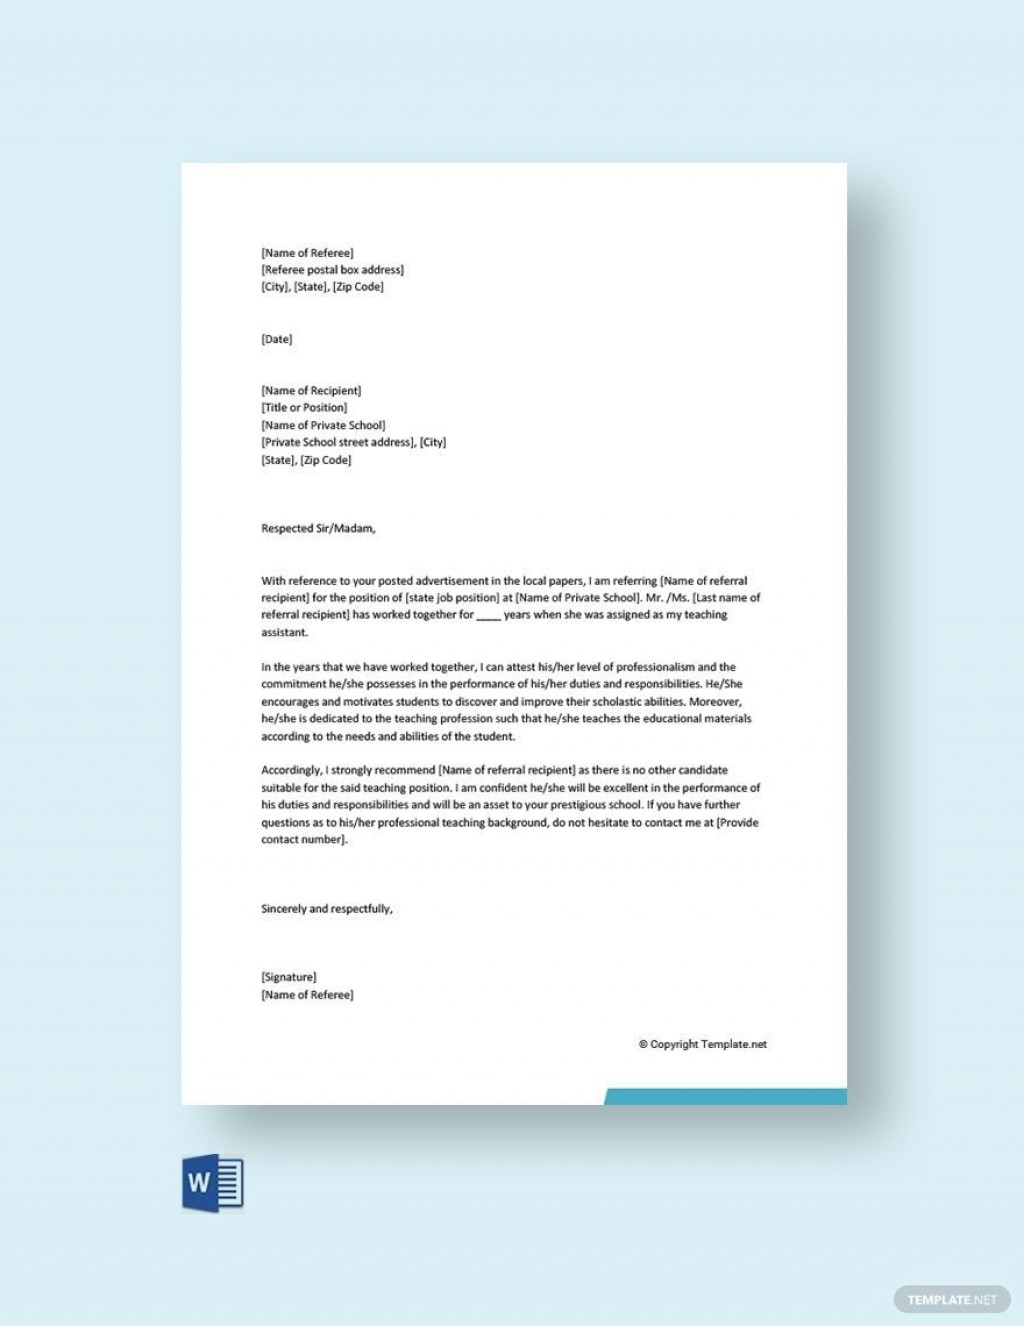 002 Unusual Free Reference Letter Template Download Image Large